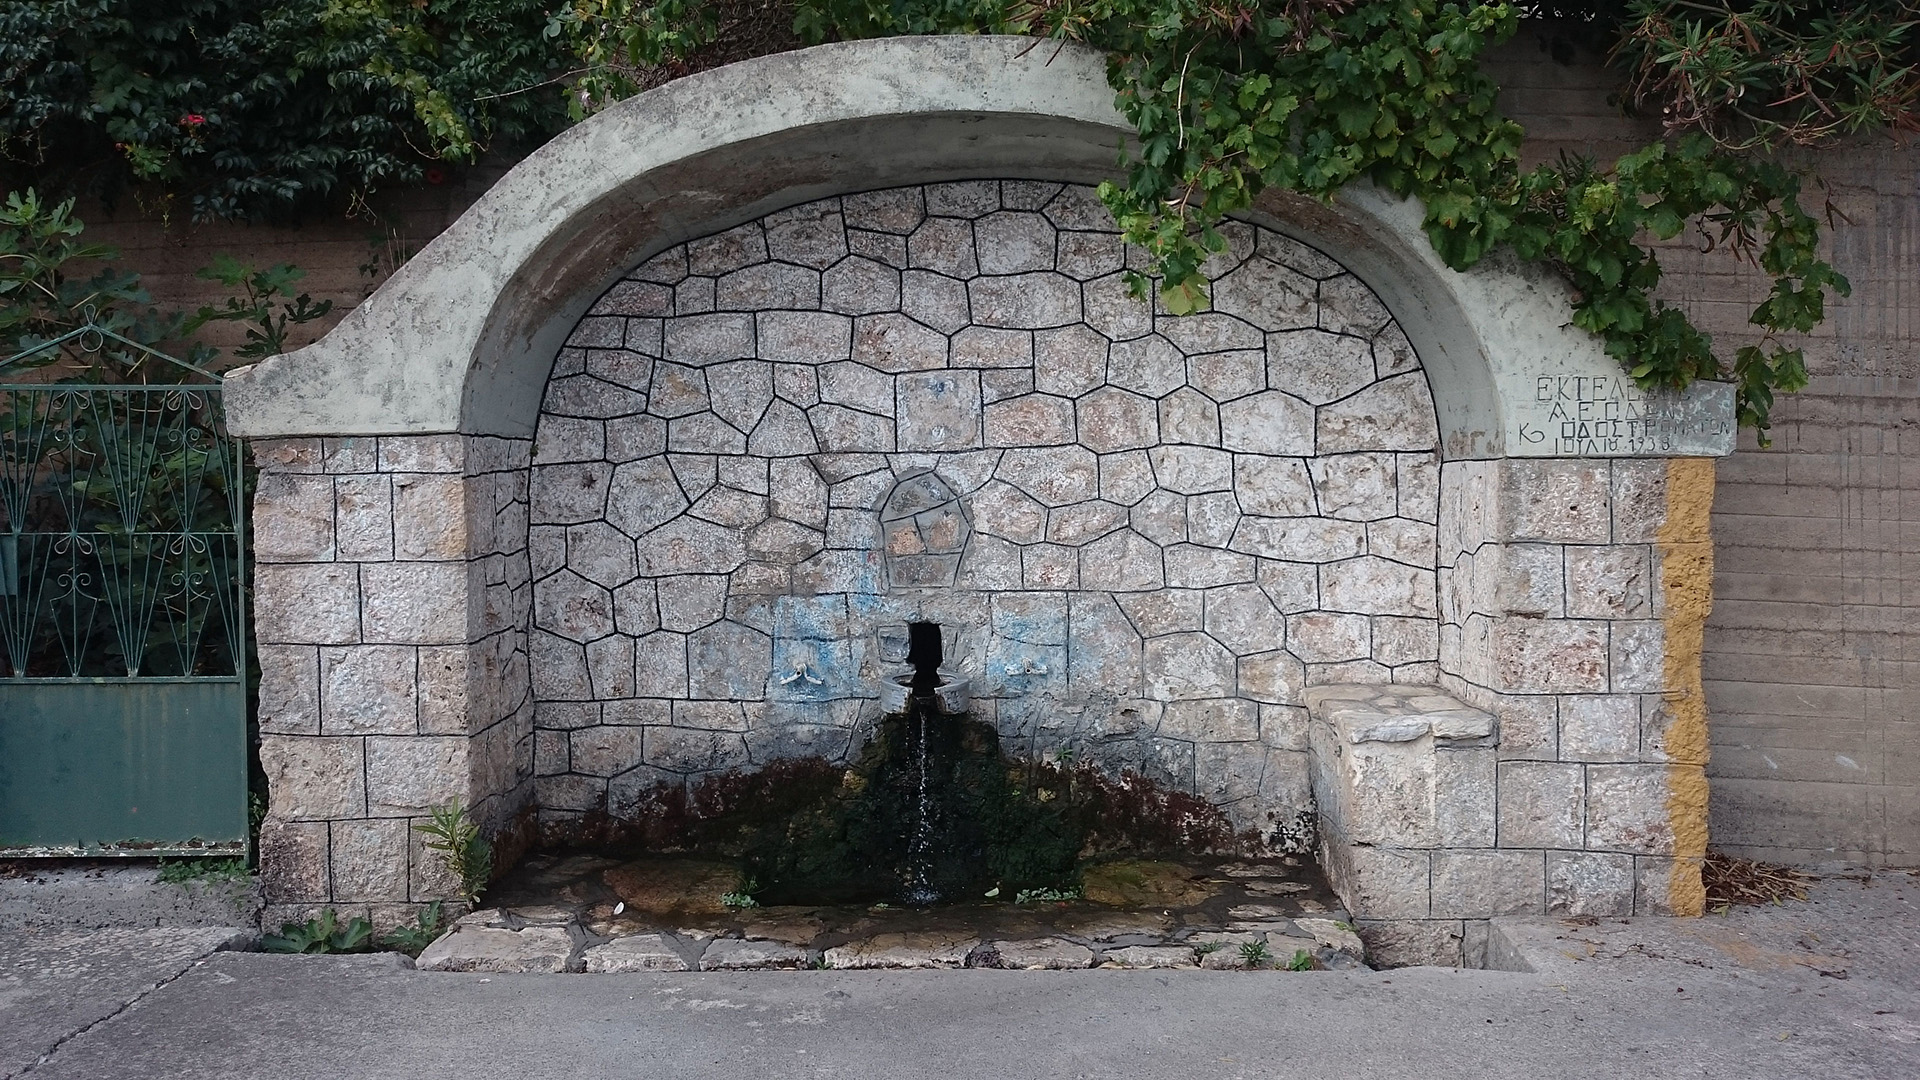 Voreleiko Fountain